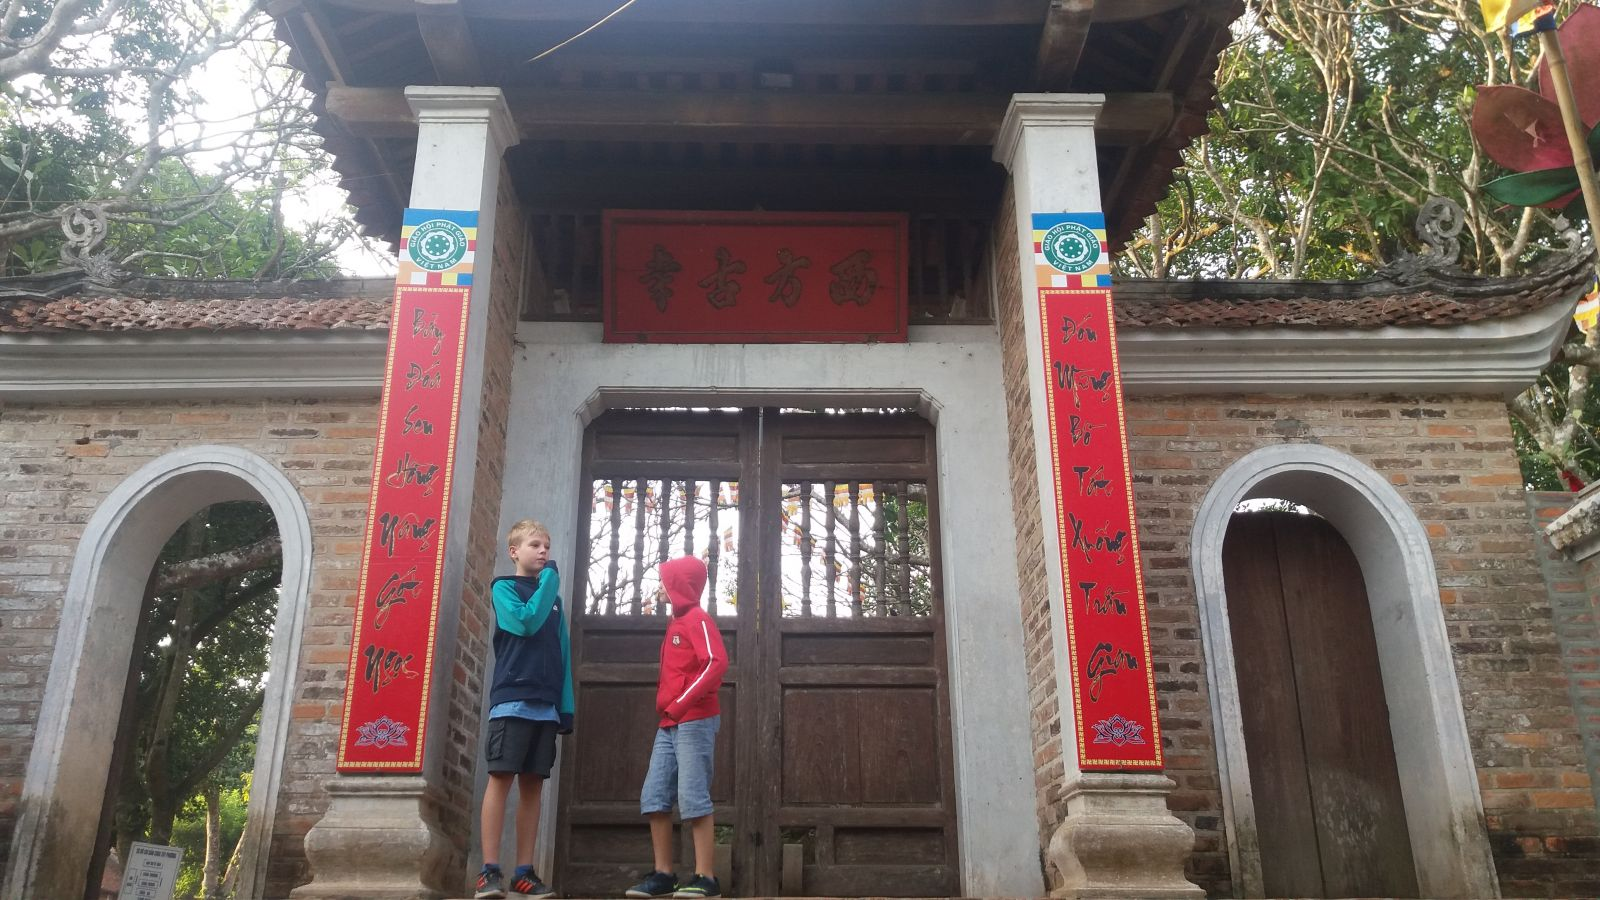 Temple gate in Duong Lam